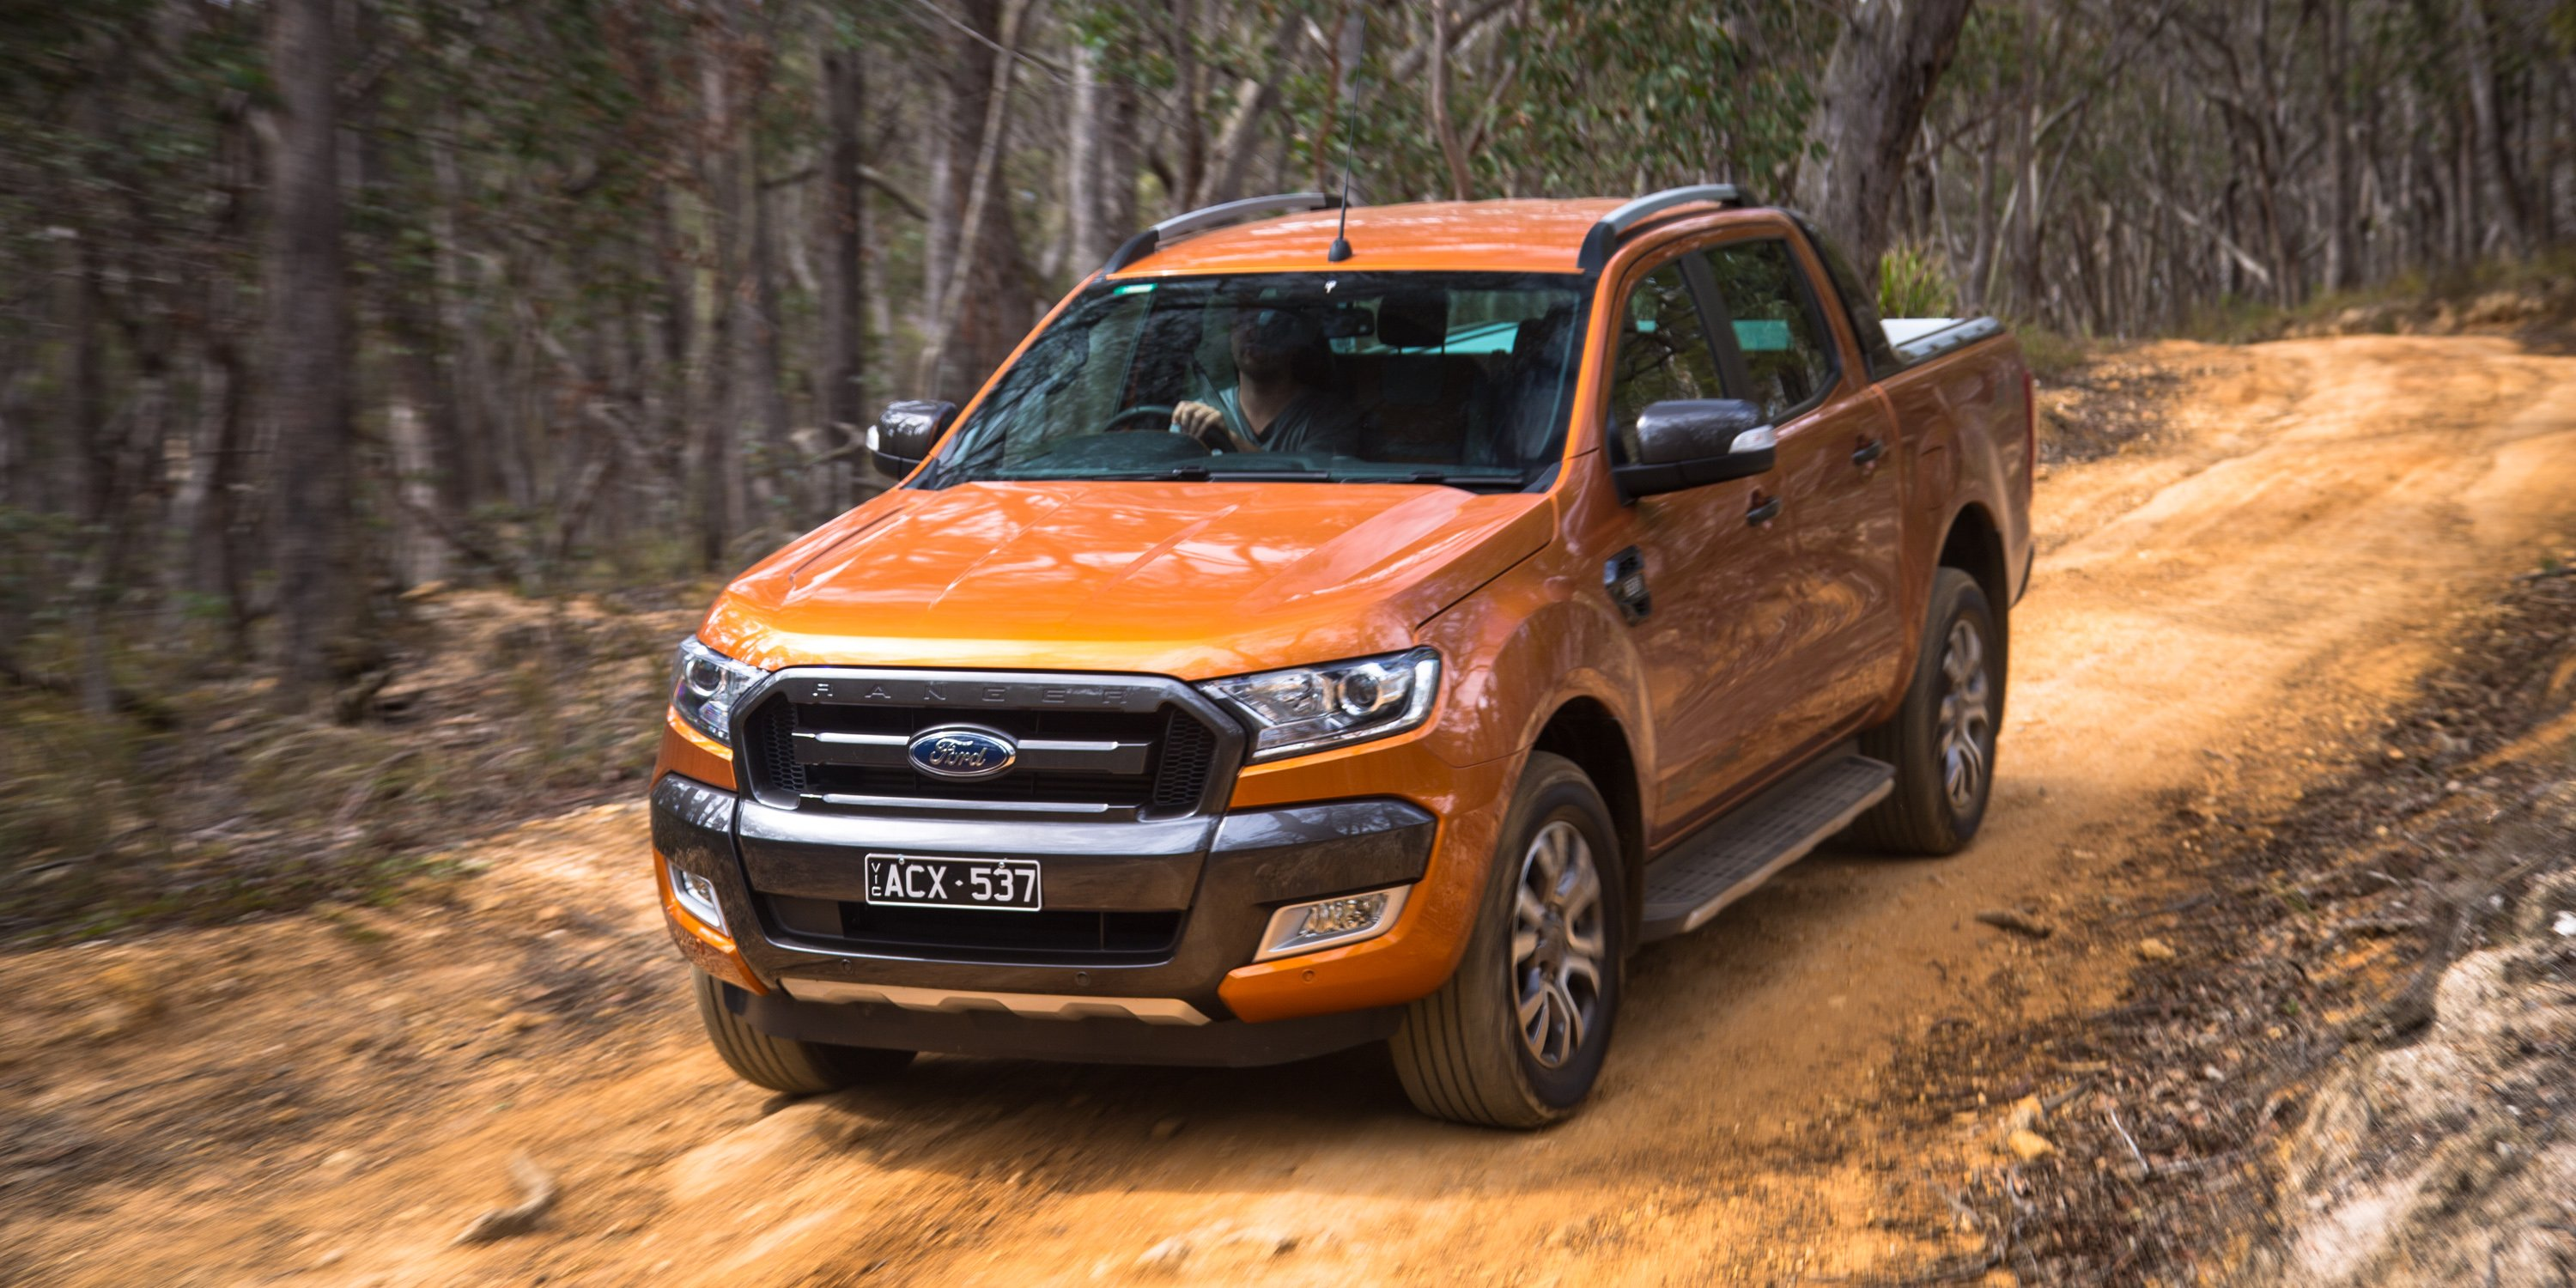 2018 Ford Focus Rs Price >> 2016 Ford Ranger Wildtrak Review | CarAdvice